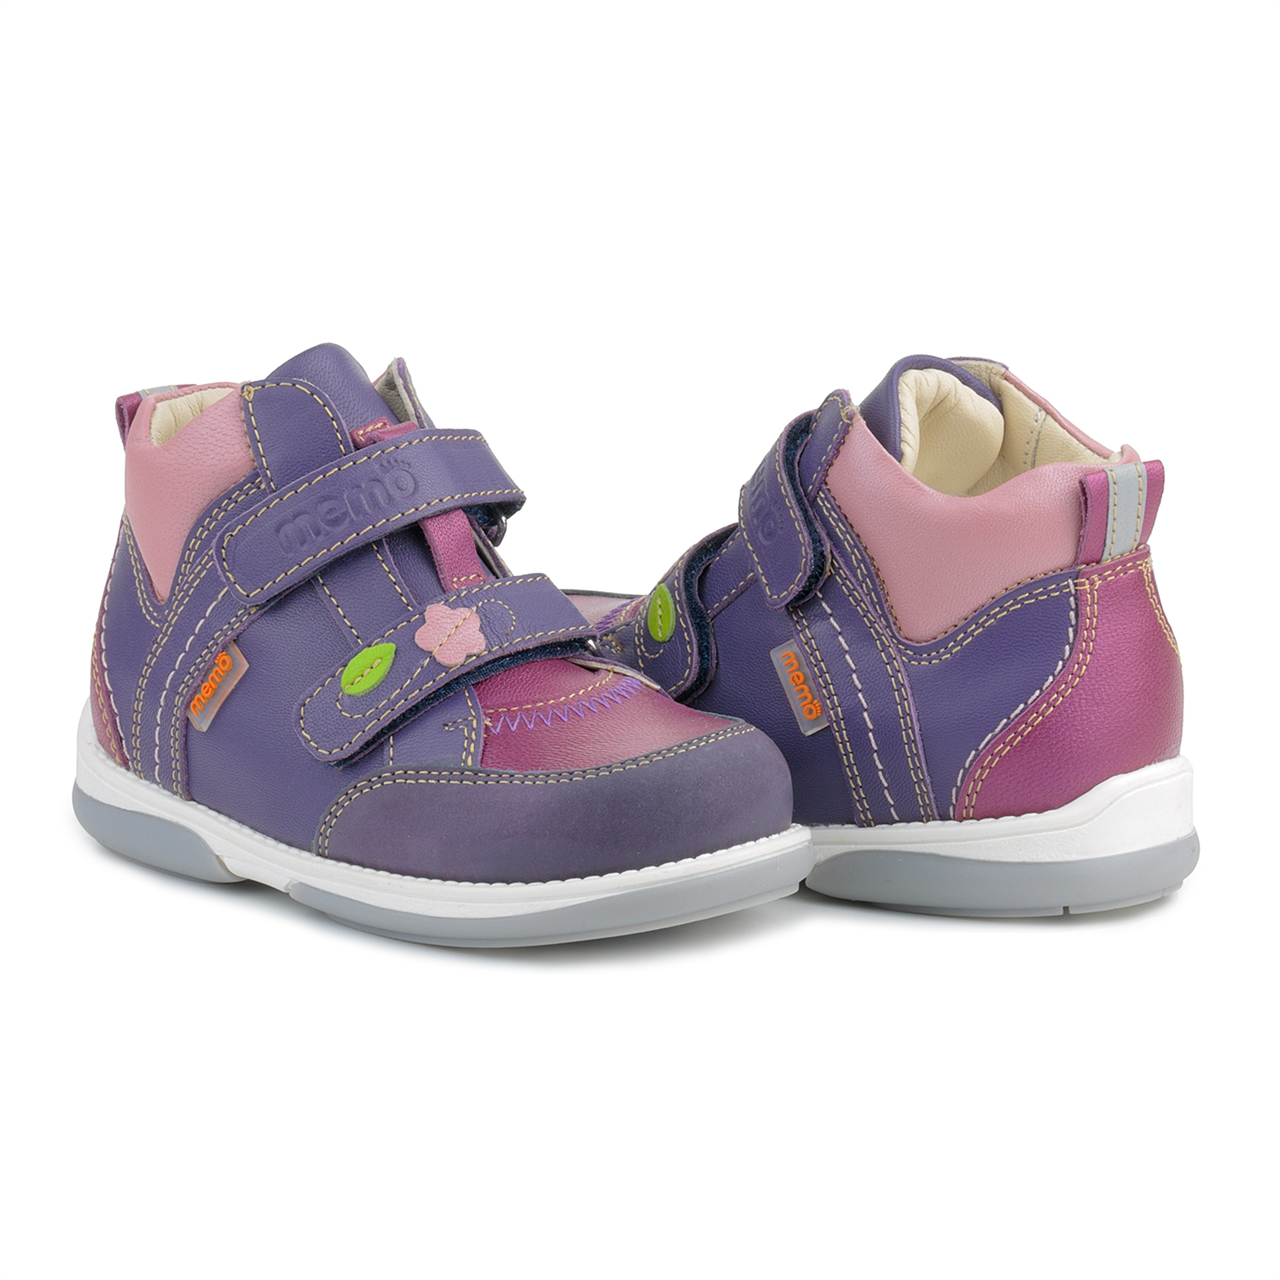 Memo Shoes Memo Polo 3JE Pink Purple Toddler Girl